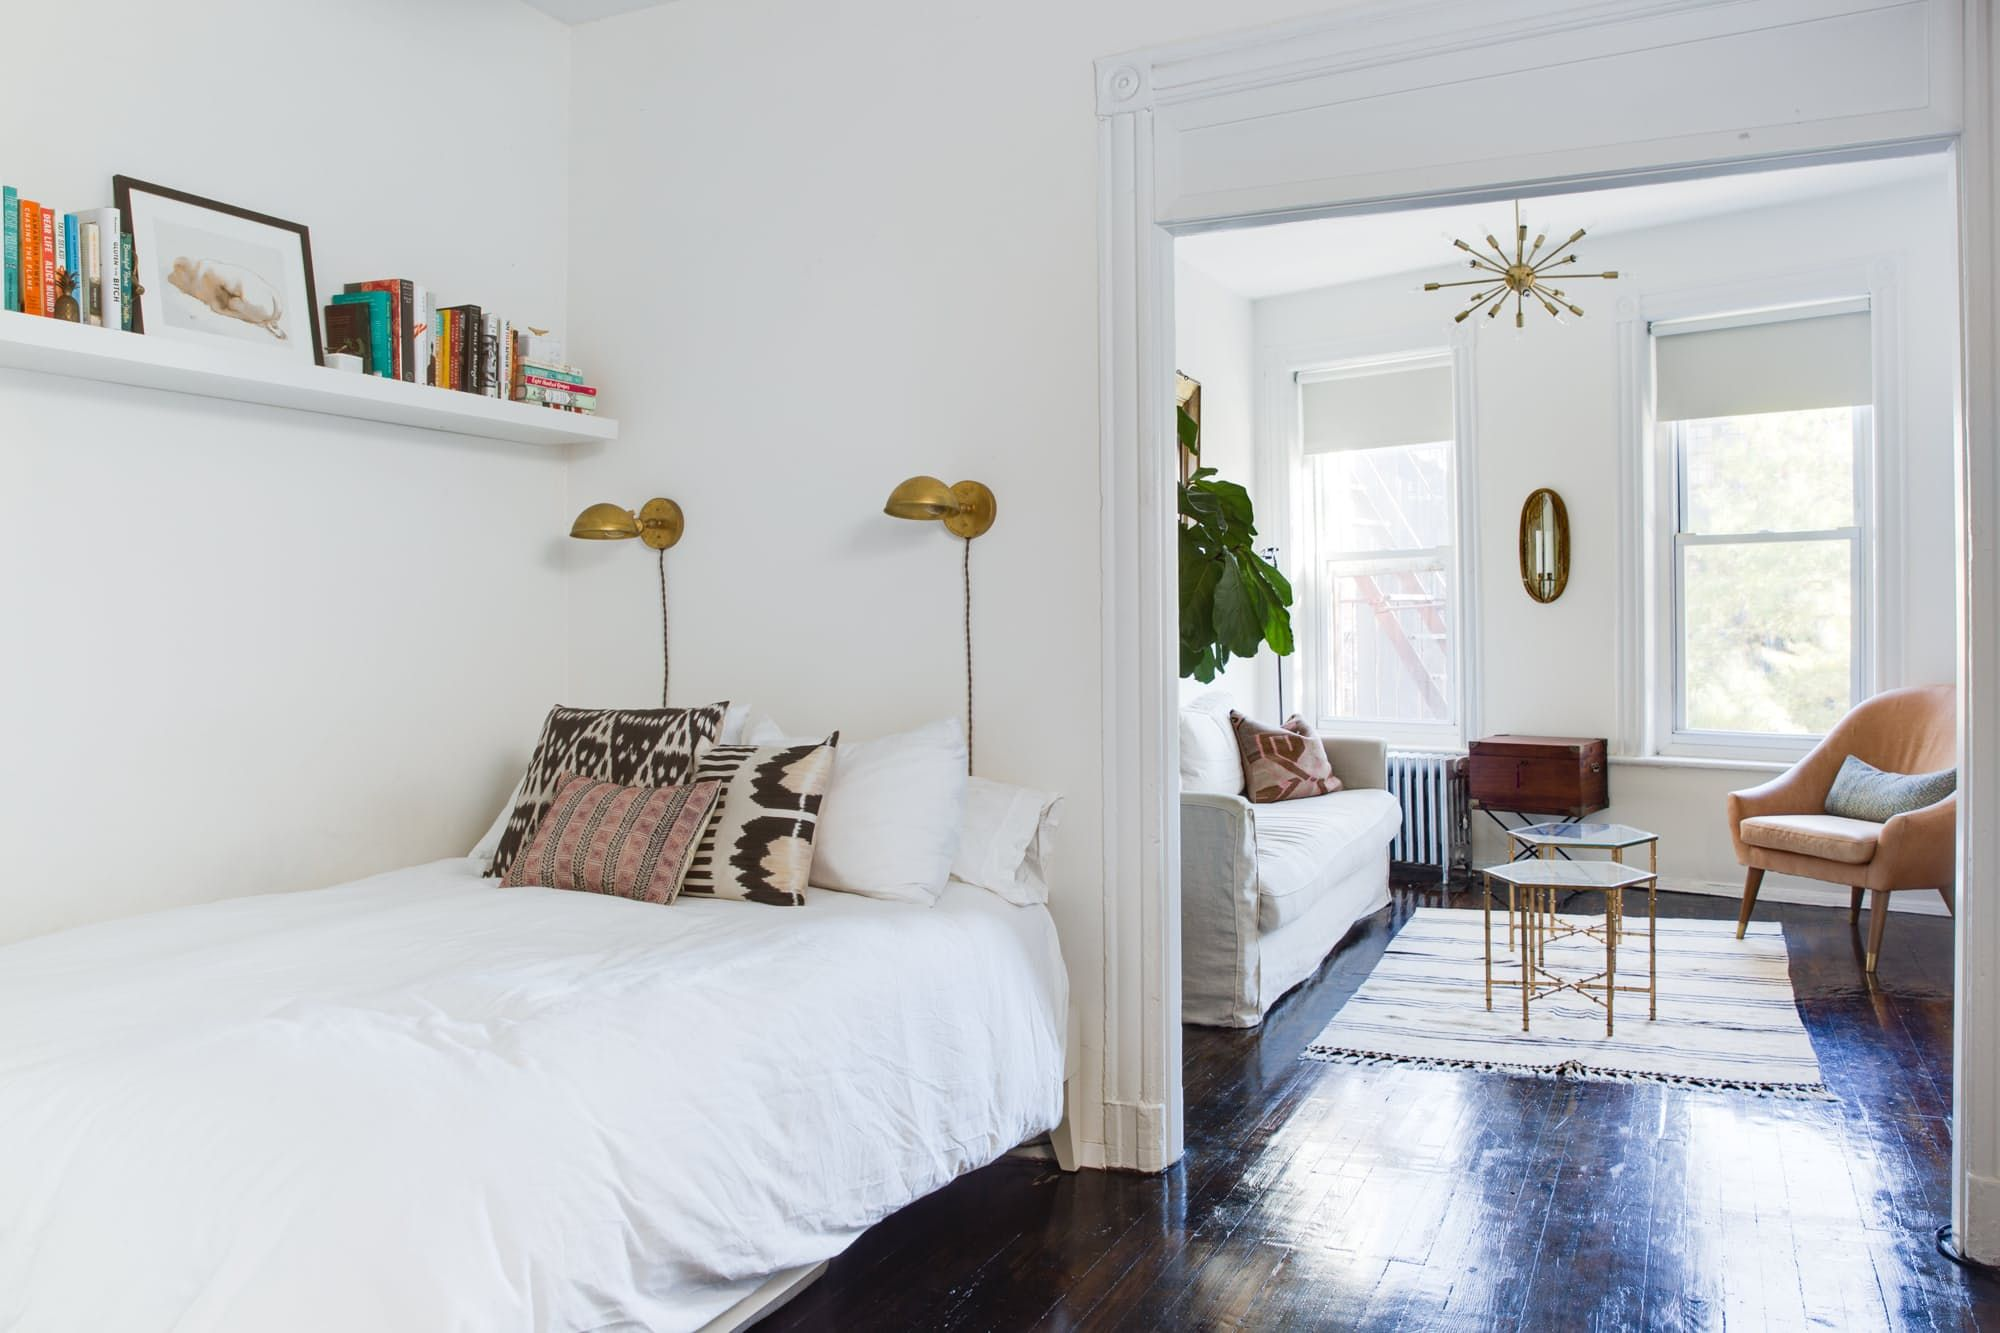 A Compact Chic Classic Railroad Apartment In Nyc Small Room Design Small Space Bedroom Small Bedroom